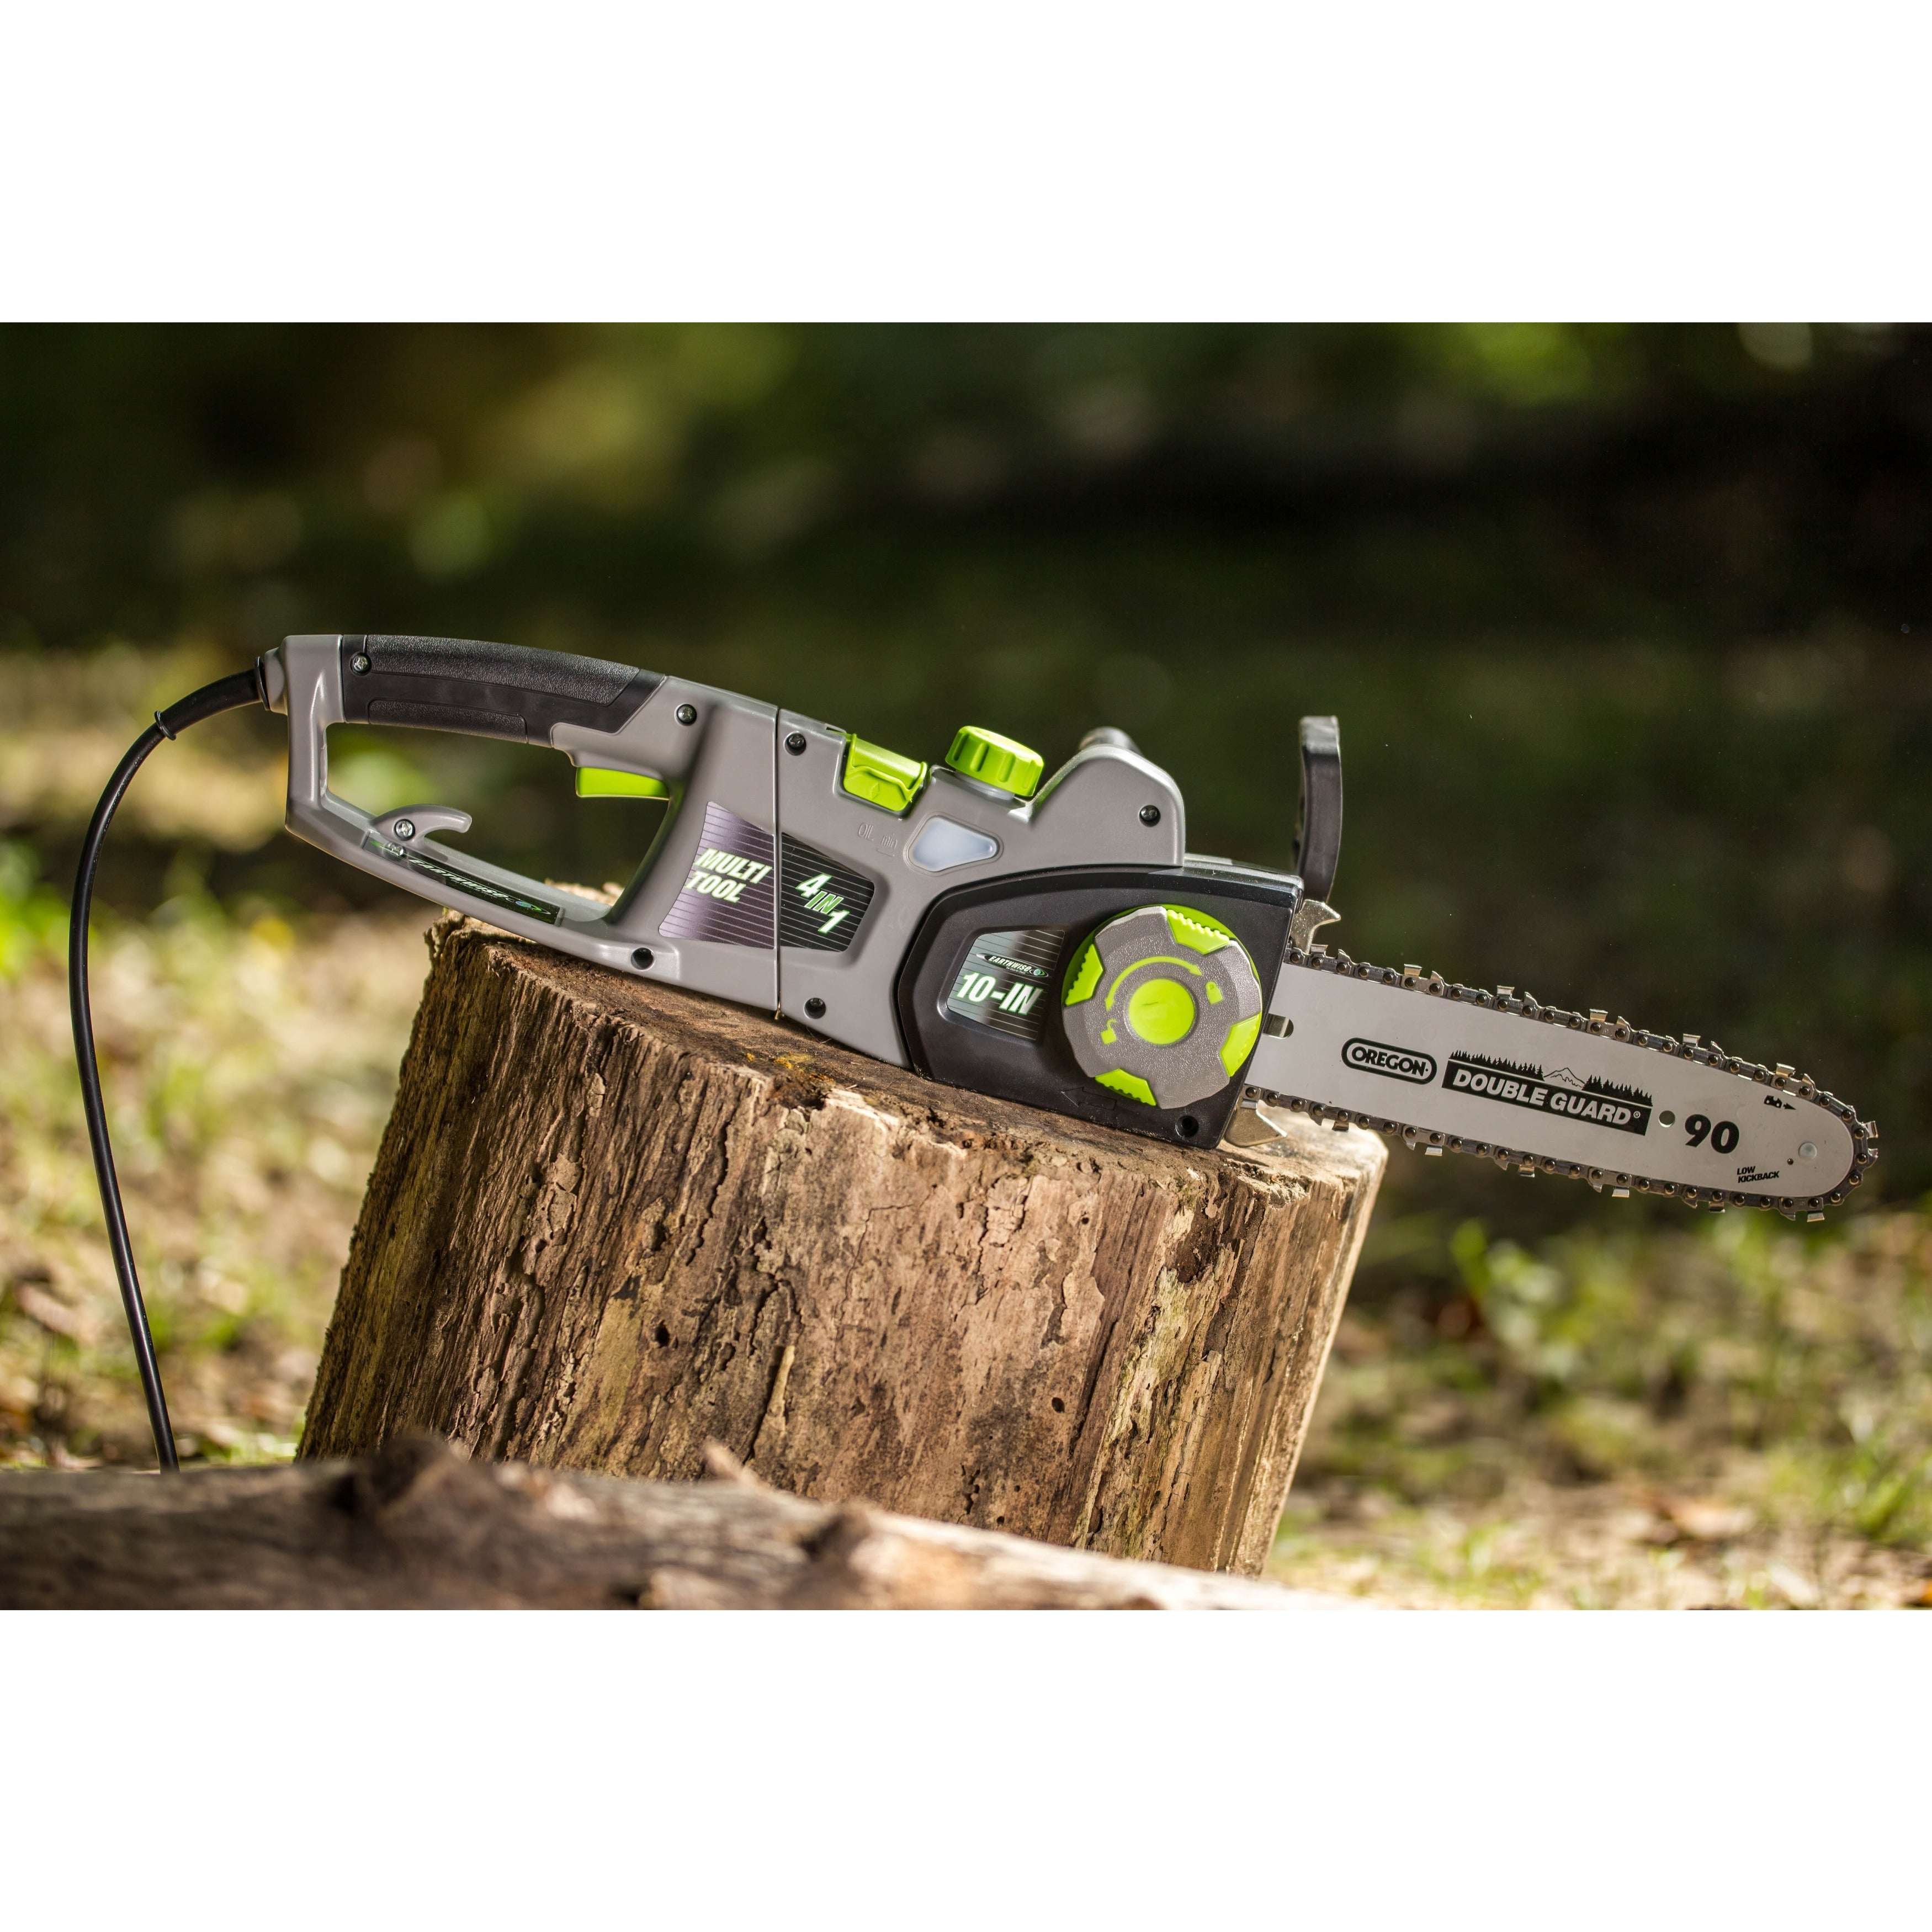 Earthwise 4 in 1 electric chainsaw with pole saw hedge trimmer and earthwise 4 in 1 electric chainsaw with pole saw hedge trimmer and pole hedge trimmer free shipping today overstock 20665523 keyboard keysfo Images